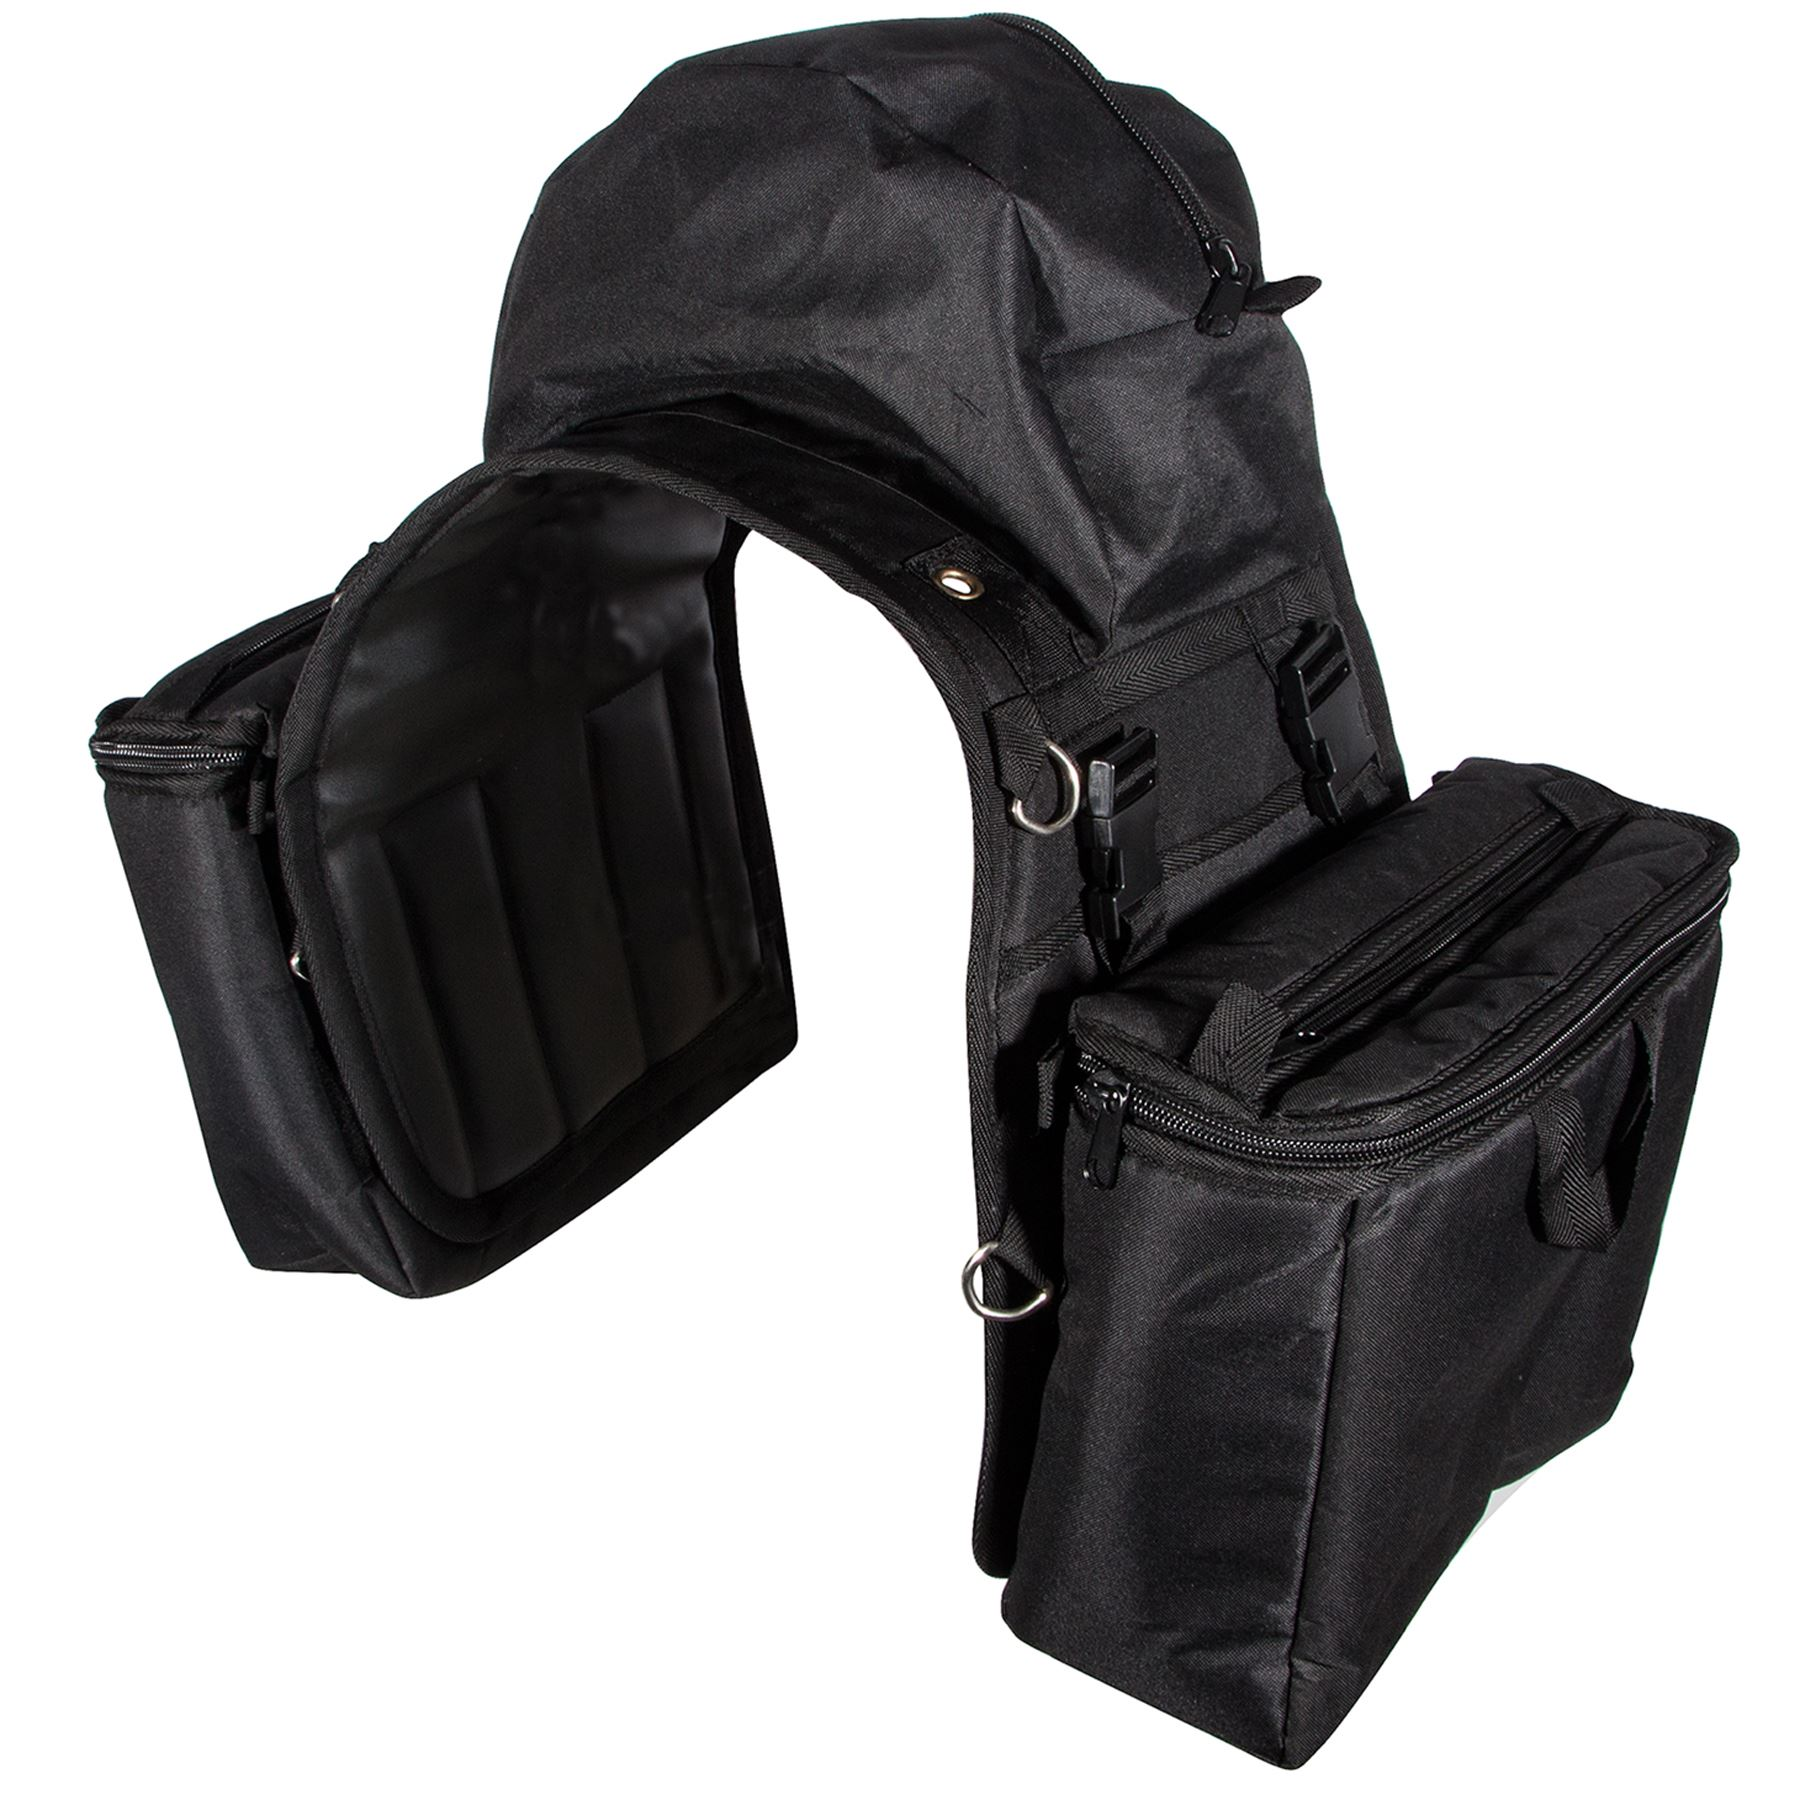 Dura-Tech® Insulated Detachable Saddle Bag w/Cantle Bag in ...